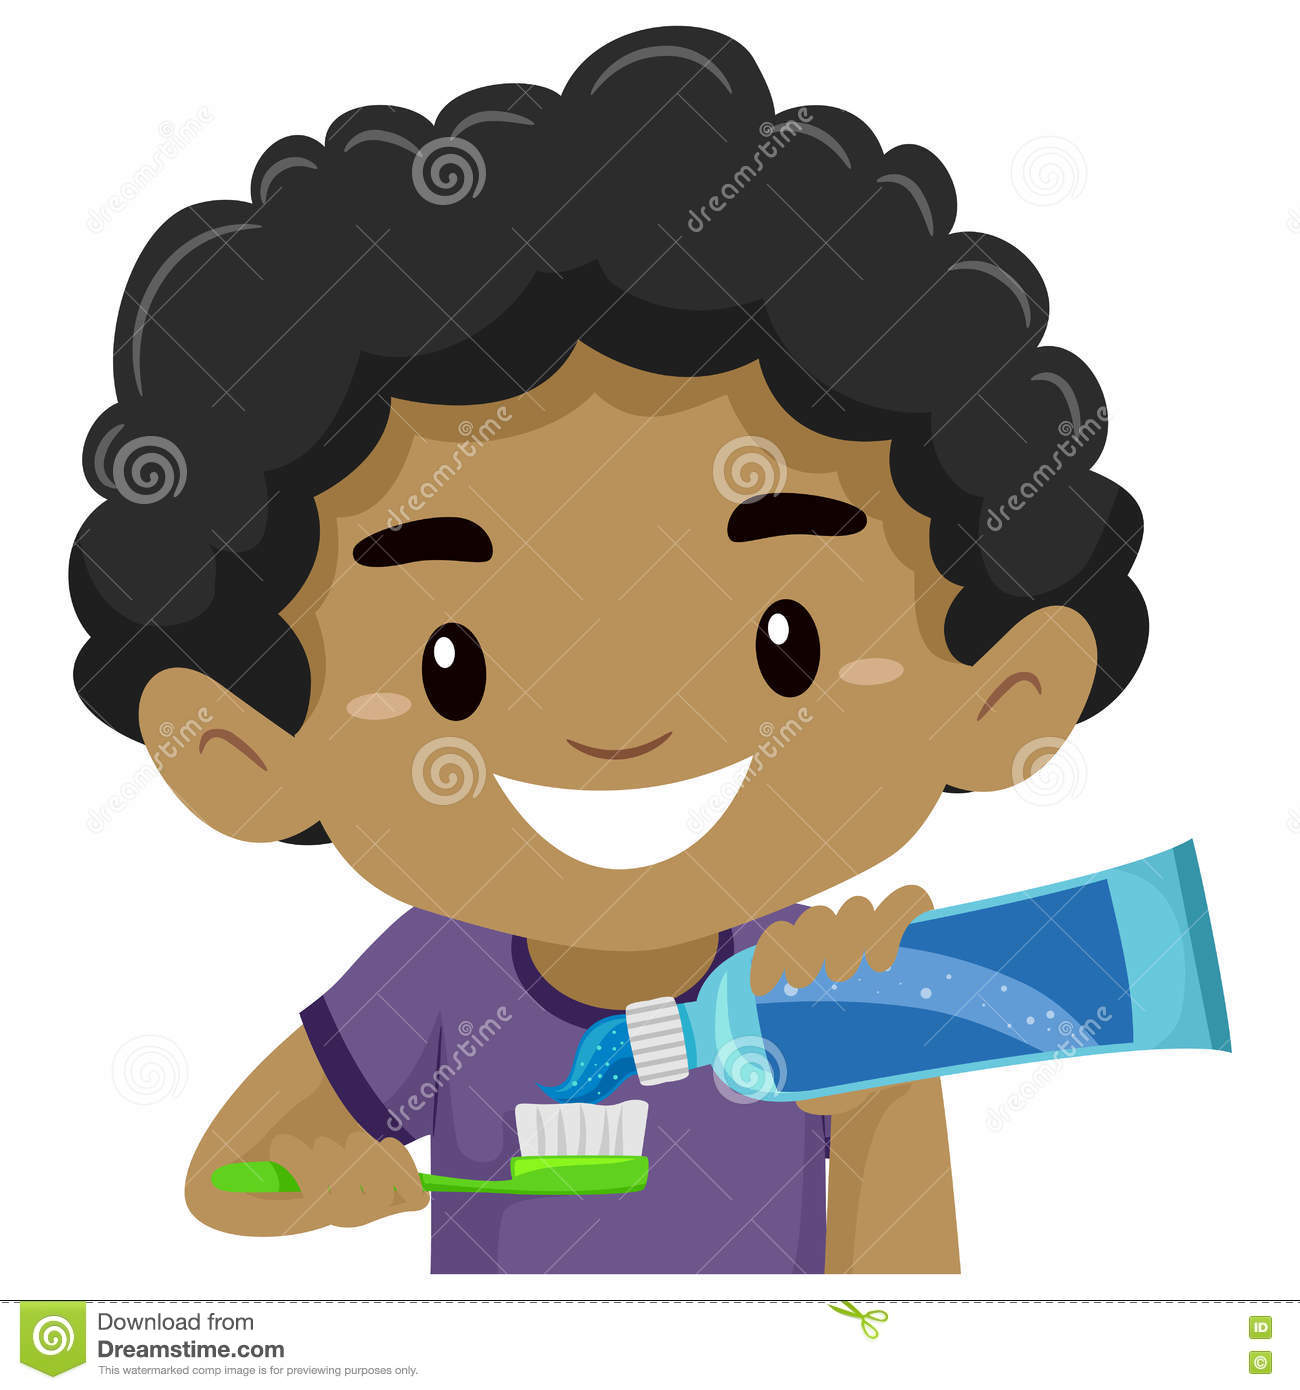 ... Putting Toothpaste On His Toothbrush Stock Vector - Image: 72752169